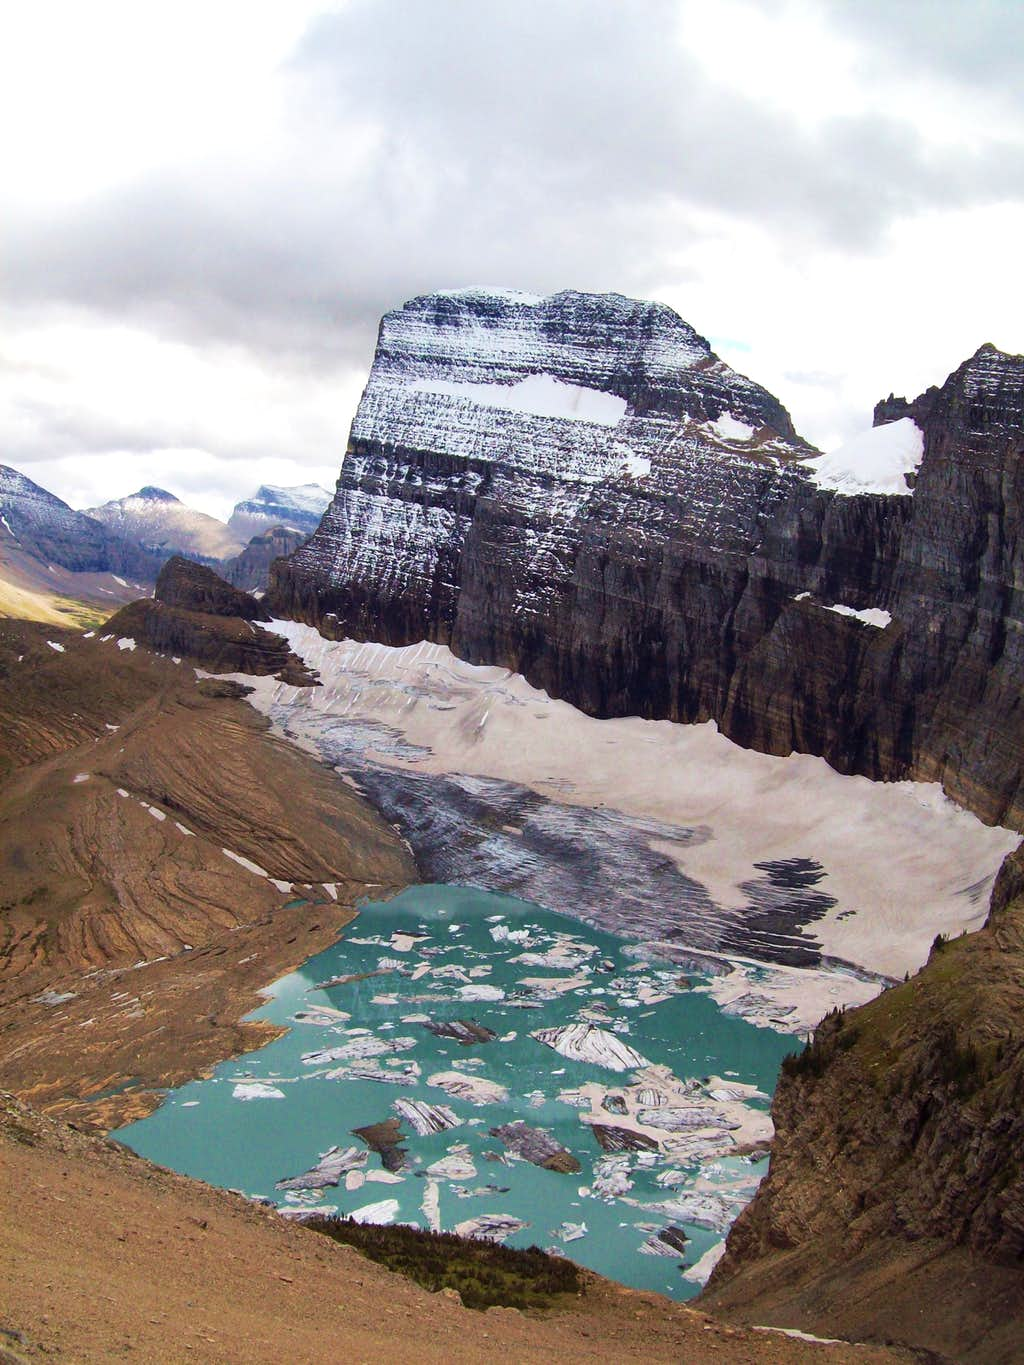 Two Glaciers and a Huge Face